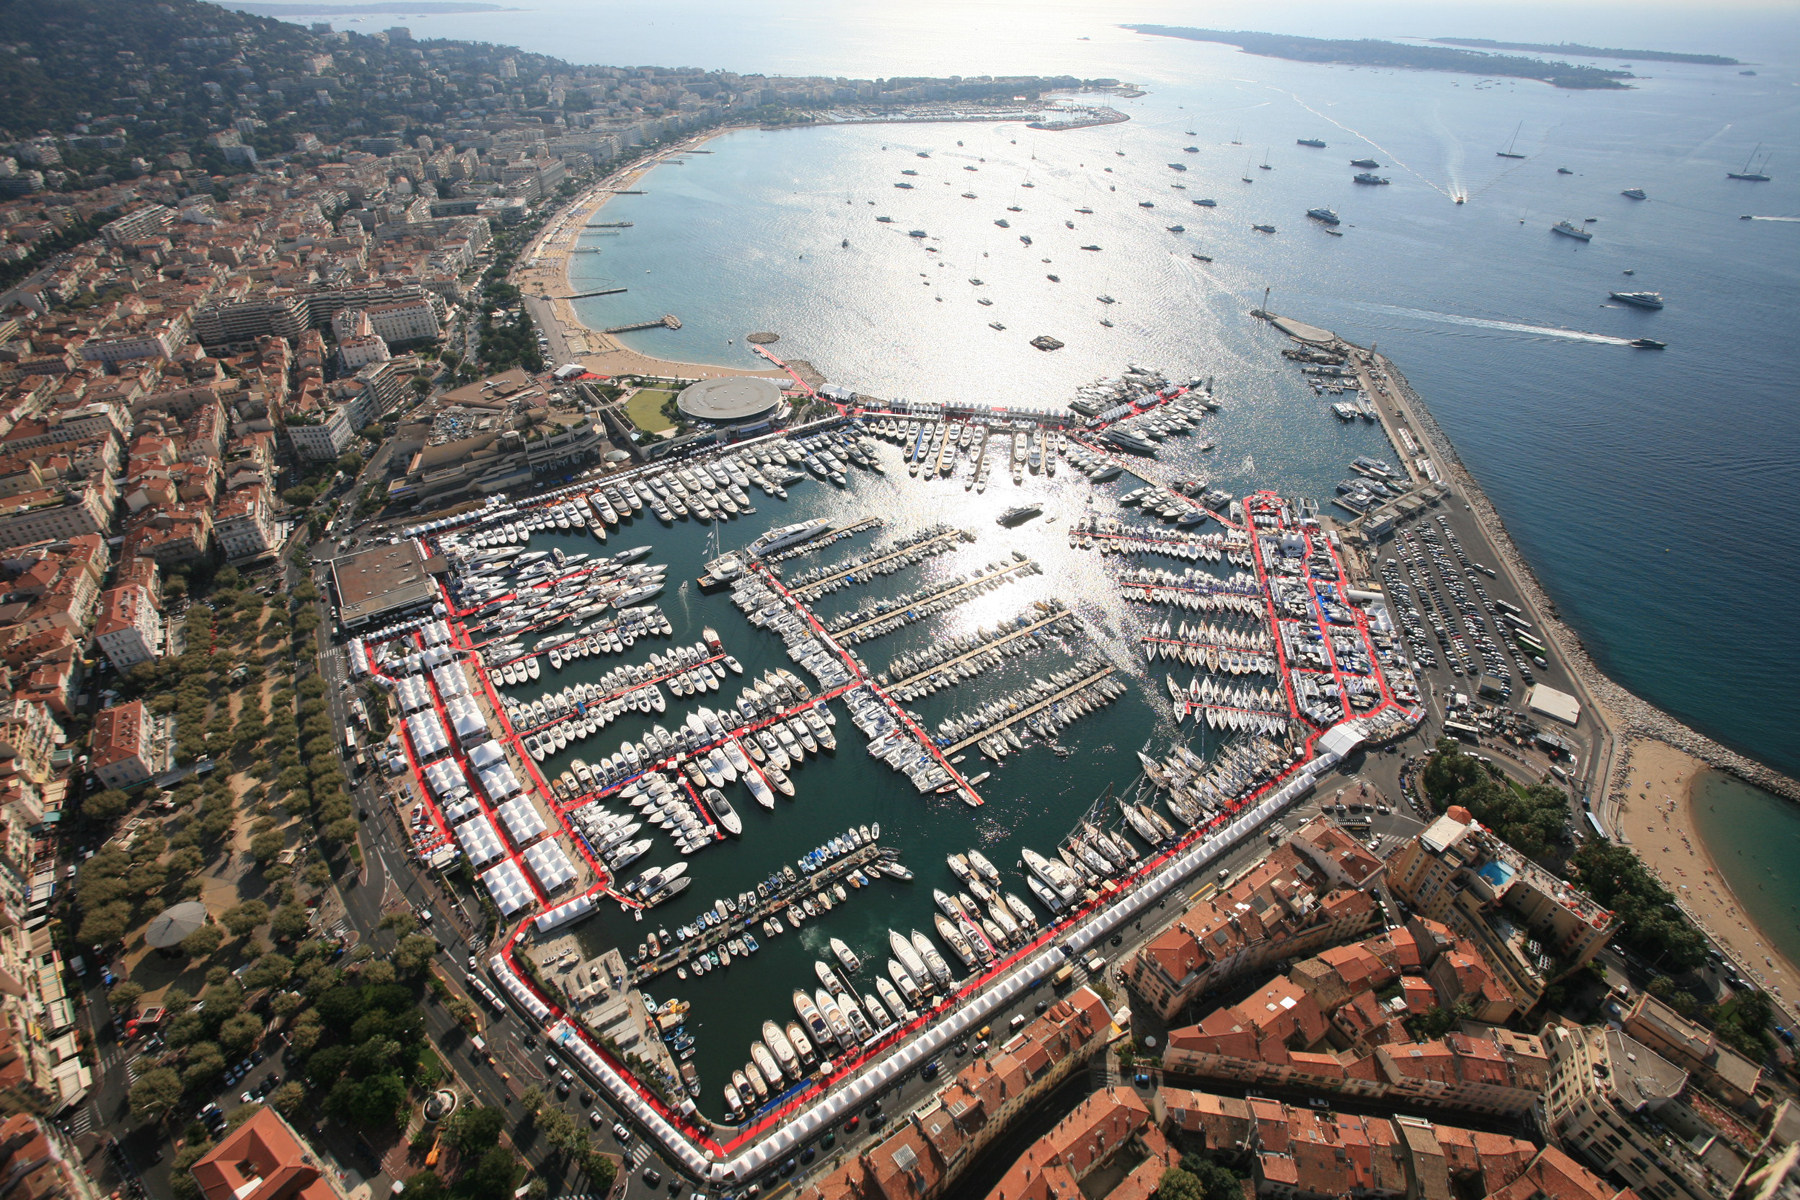 Discover the Cannes Yacht Show from your luxury Saint Tropez villa